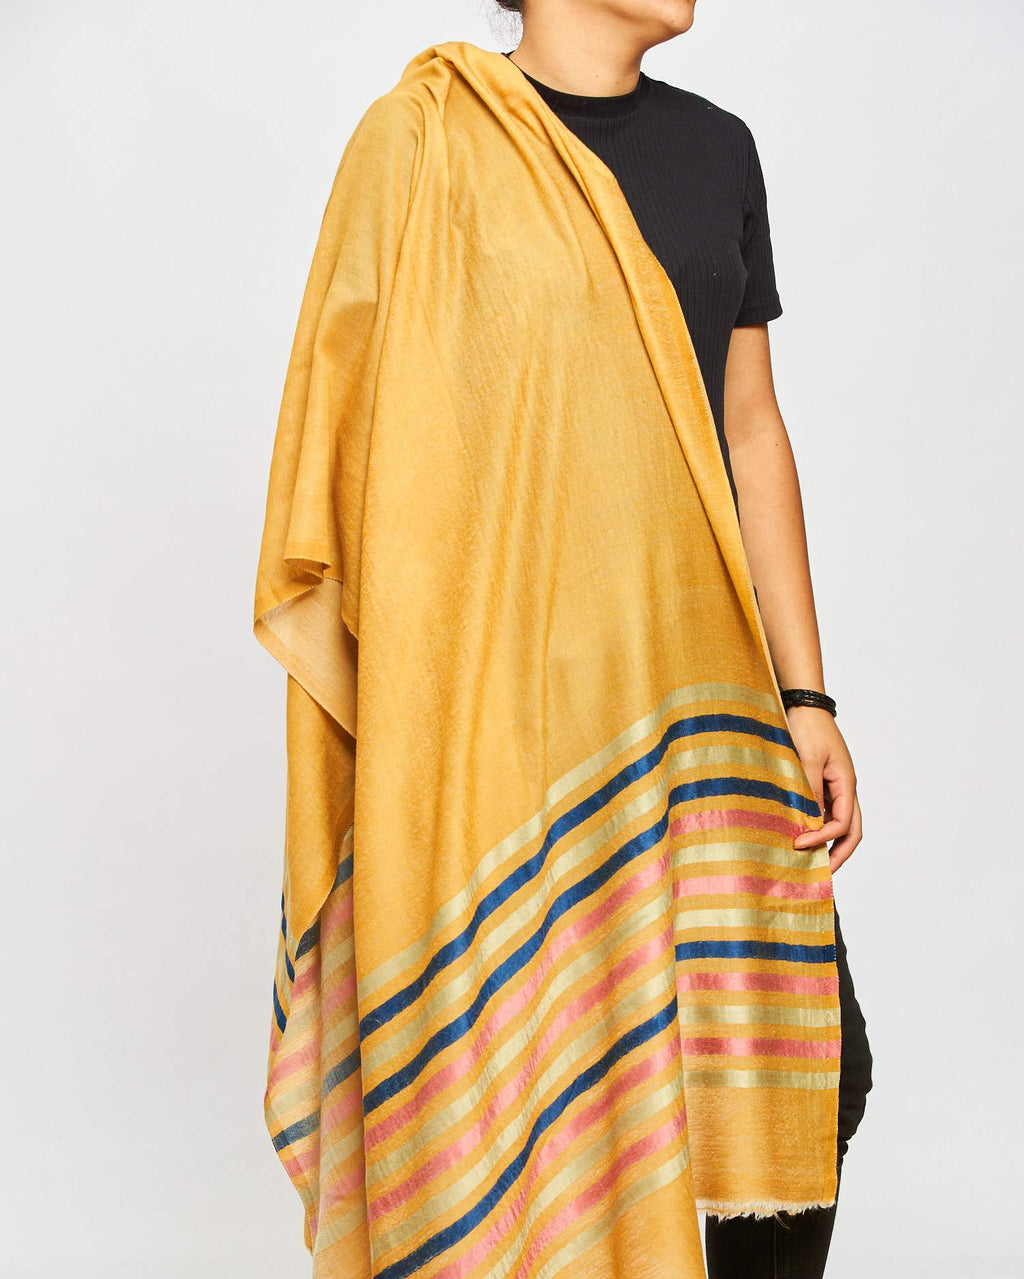 Cashmere Scarf Patterned - Multi/Mustard/Striped Border